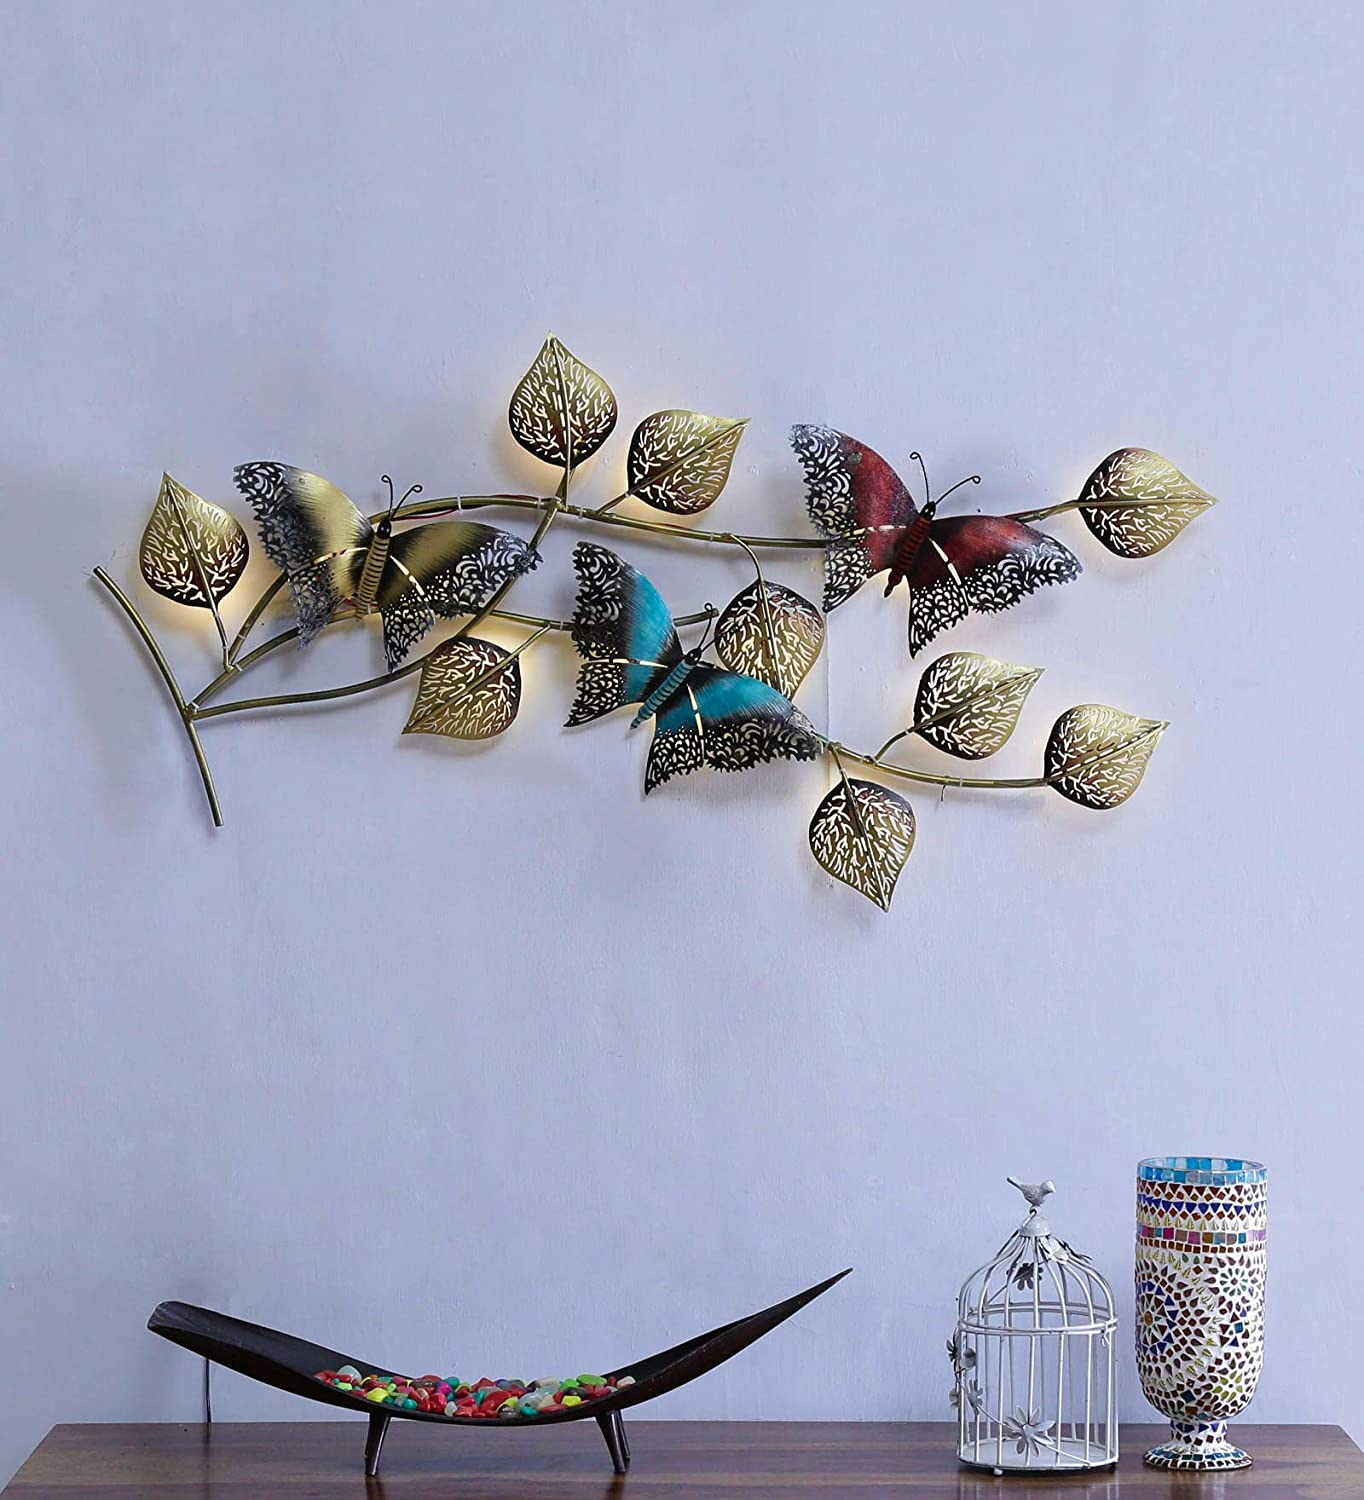 Butterfly Design with Wall Mounted & Hanging Modern Art Leaf Wall Hanging